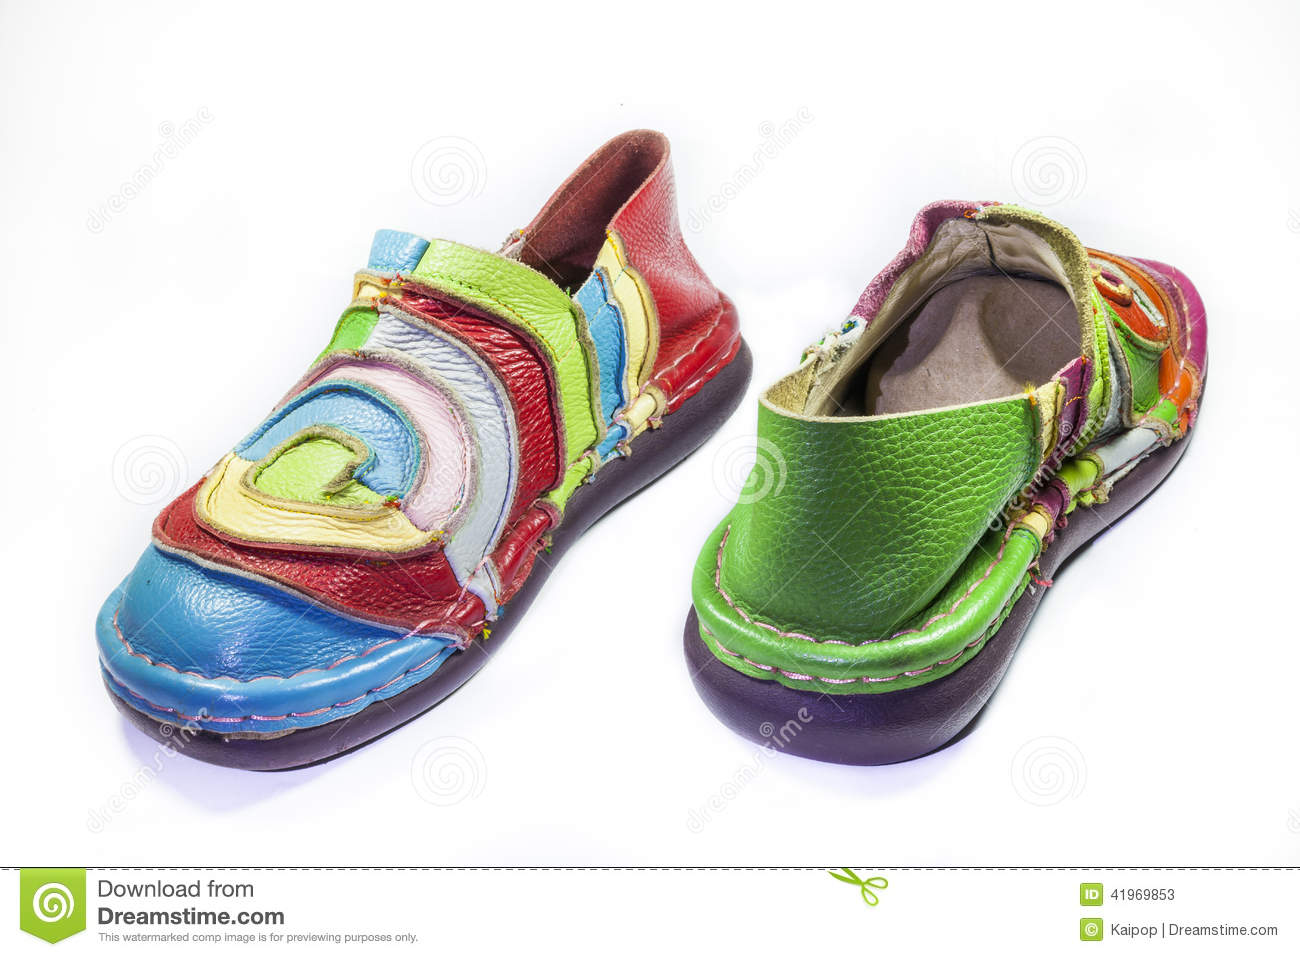 Bright Multicolored Leather Shoes Stock Image - Image of fall, heap ...